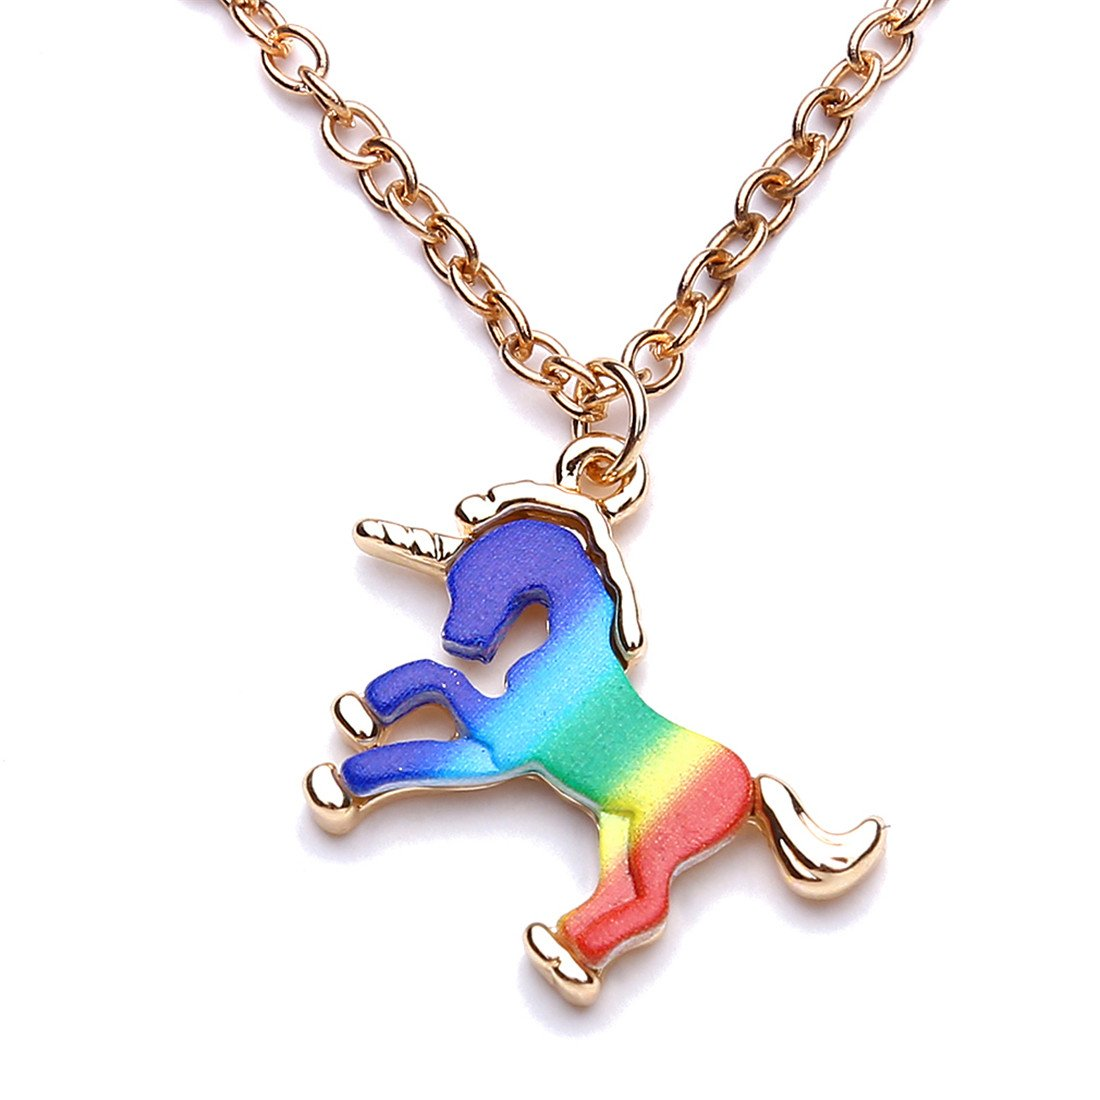 VWH Unicorn Horse Necklace Women Friend Gifts Charm Necklace